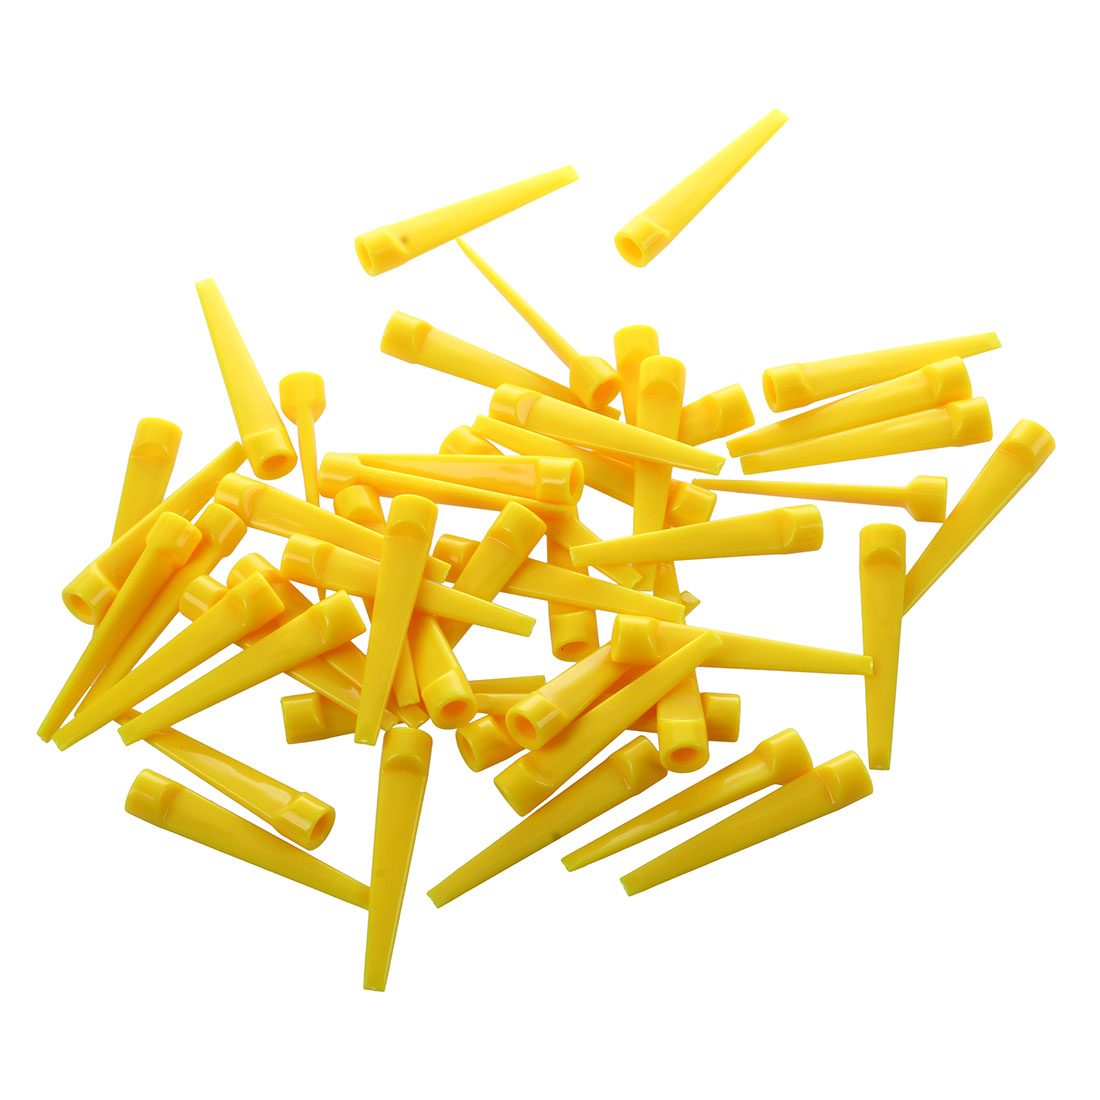 50pcs Plastic Golf Tee Tees (Yellow)